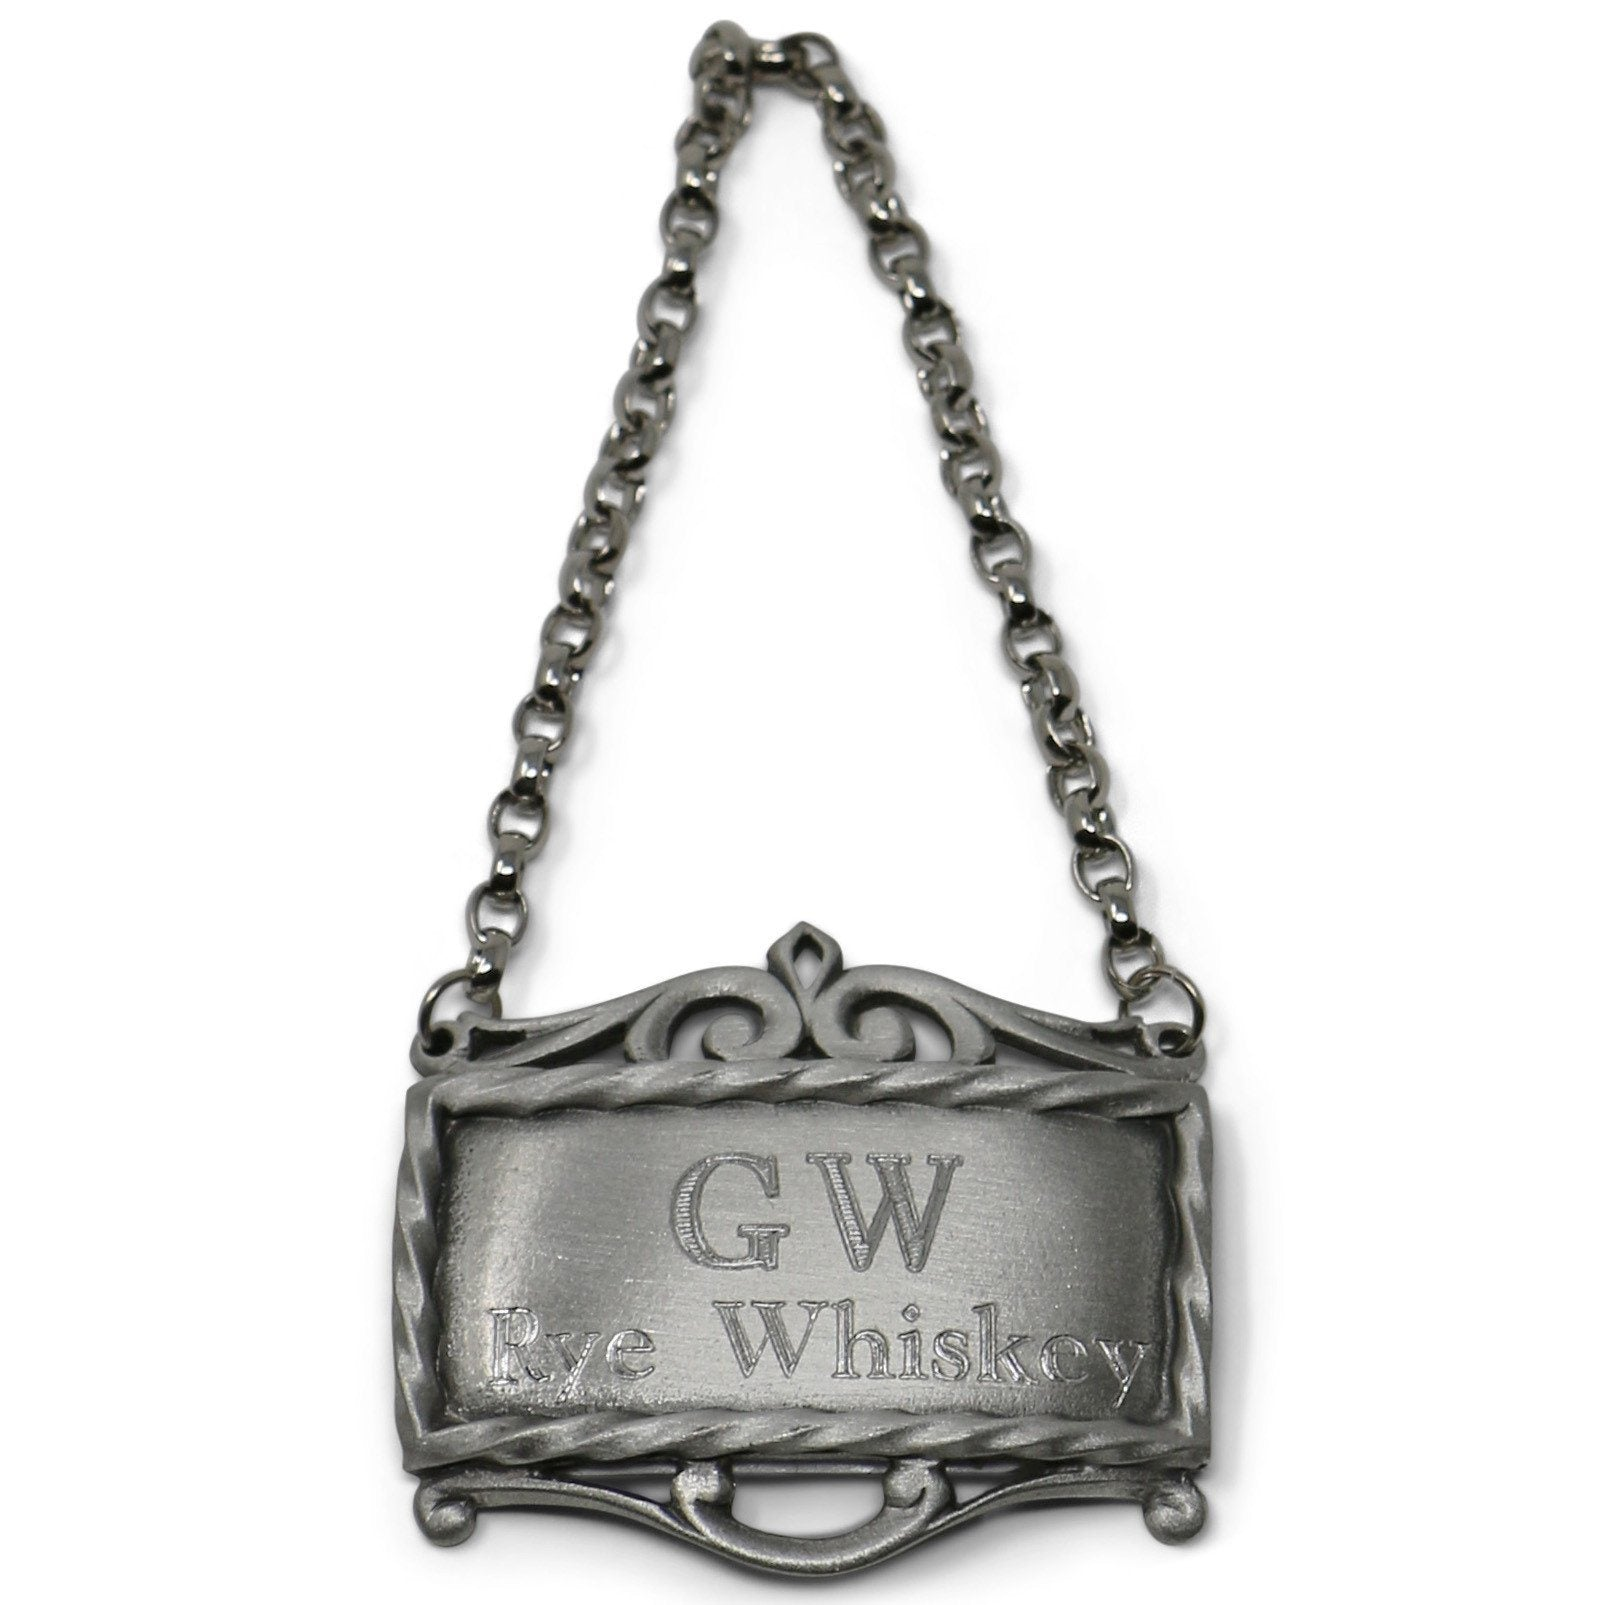 GW's Rye Whiskey Pewter Decanter Label